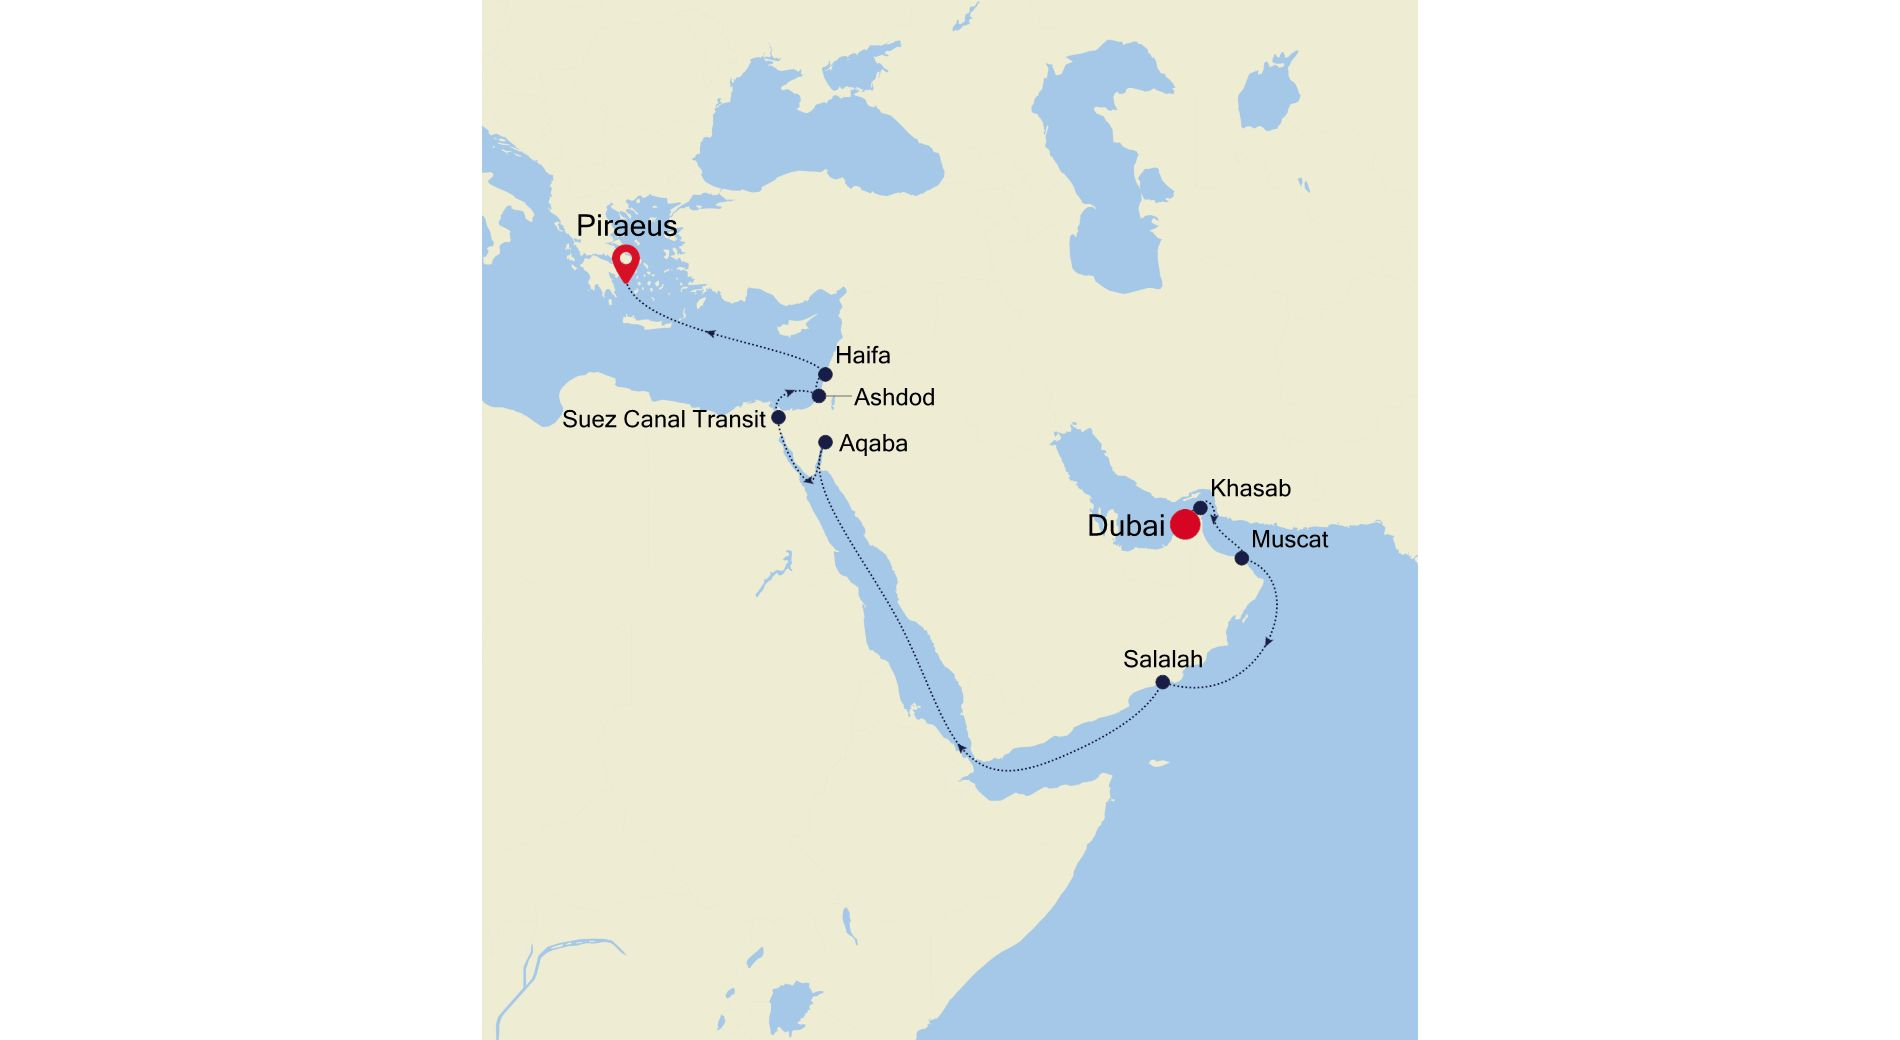 5007 - Dubai to Piraeus